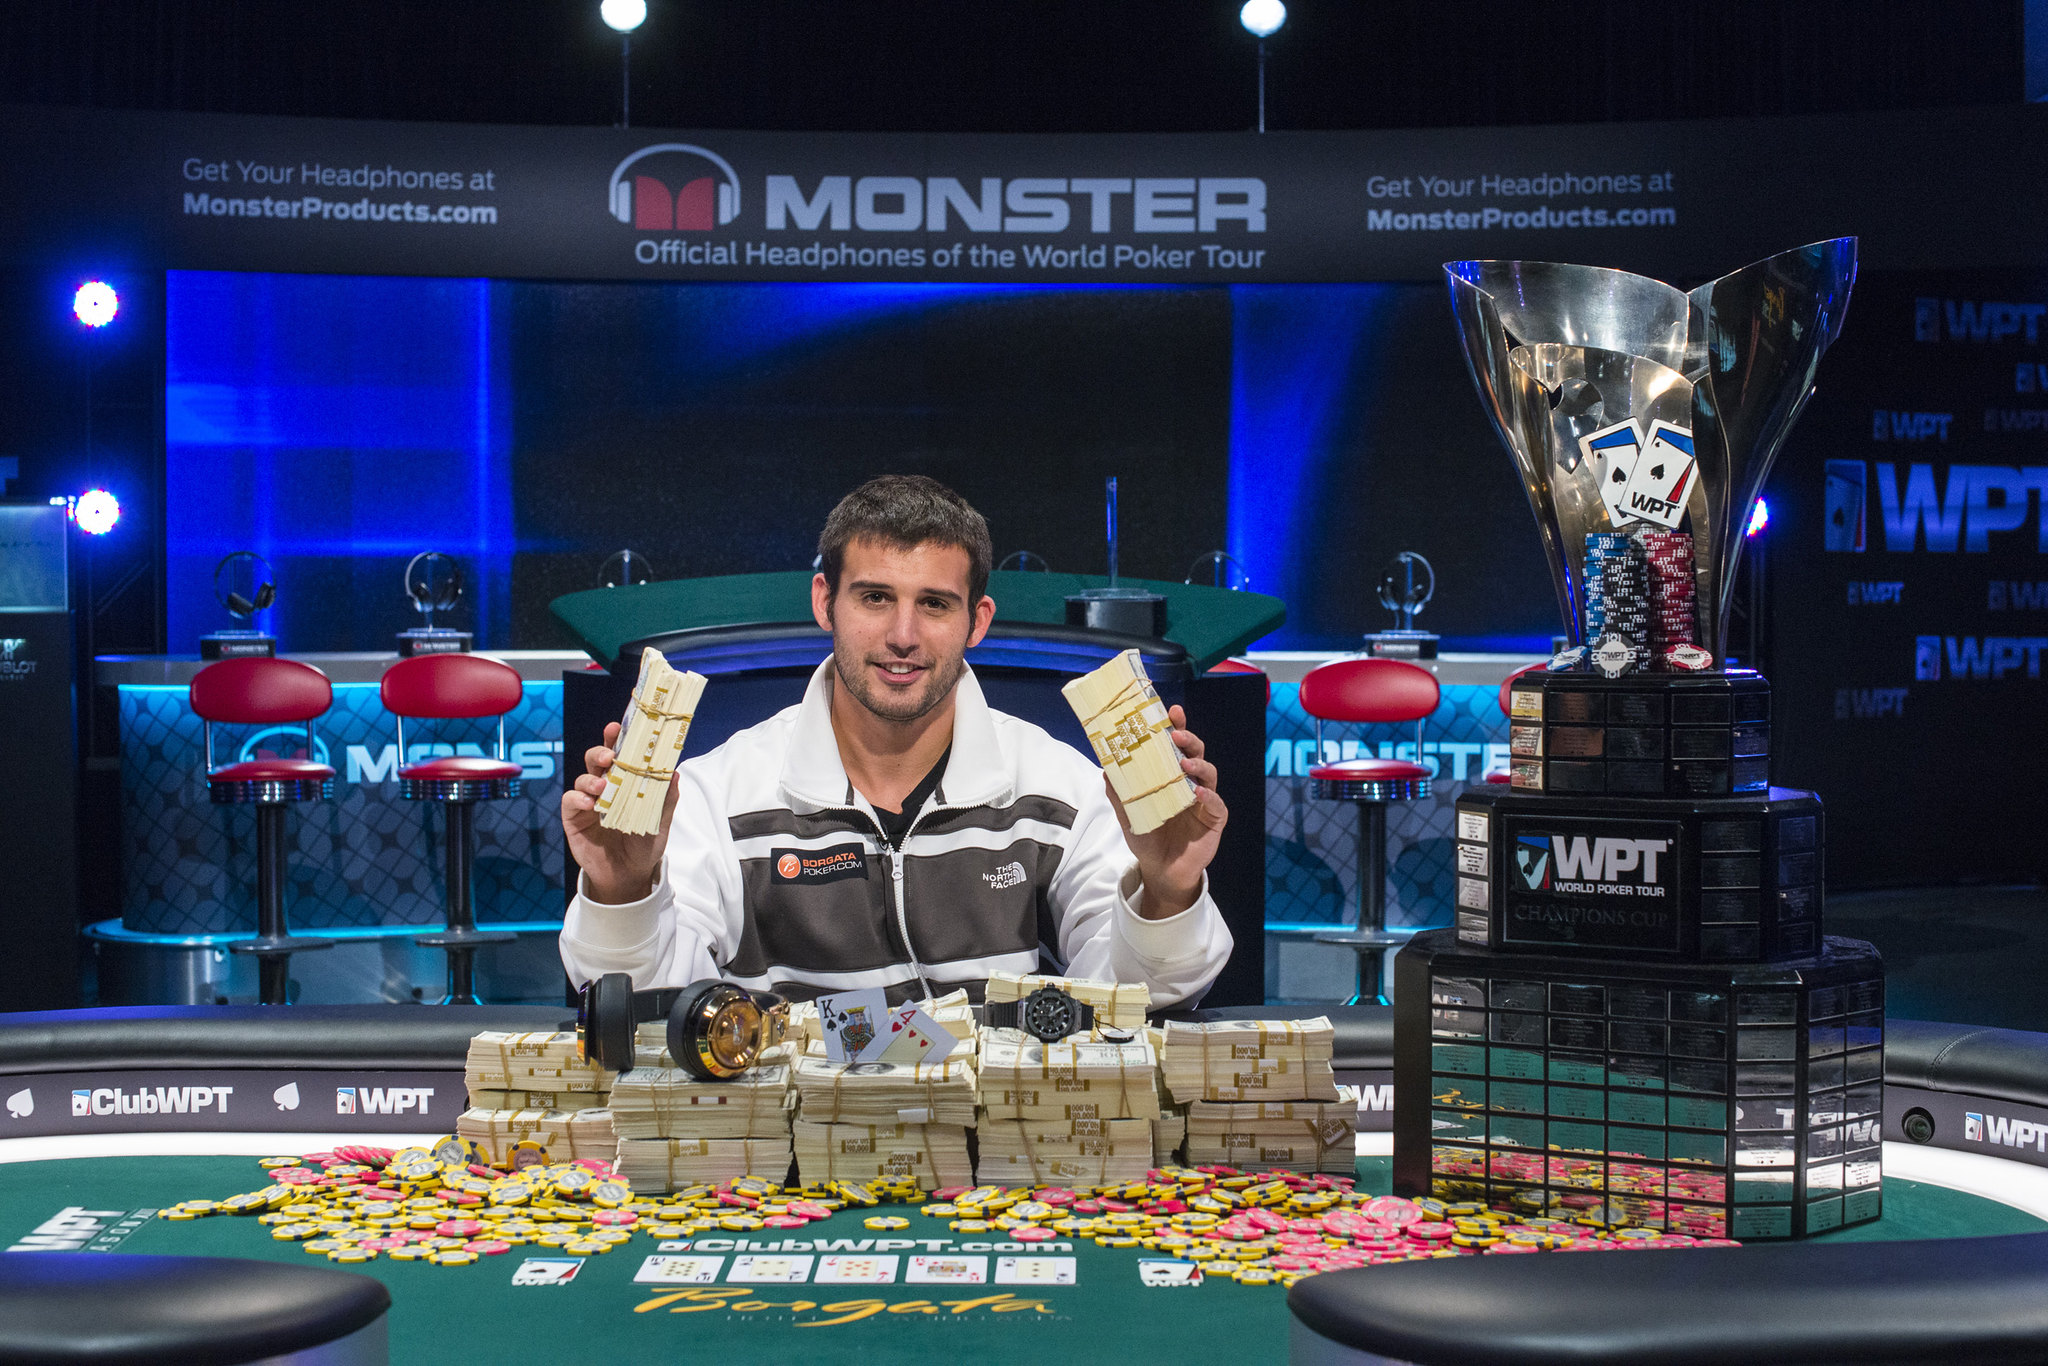 WPT Borgata Poker Open Champion (S13) Darren Elias